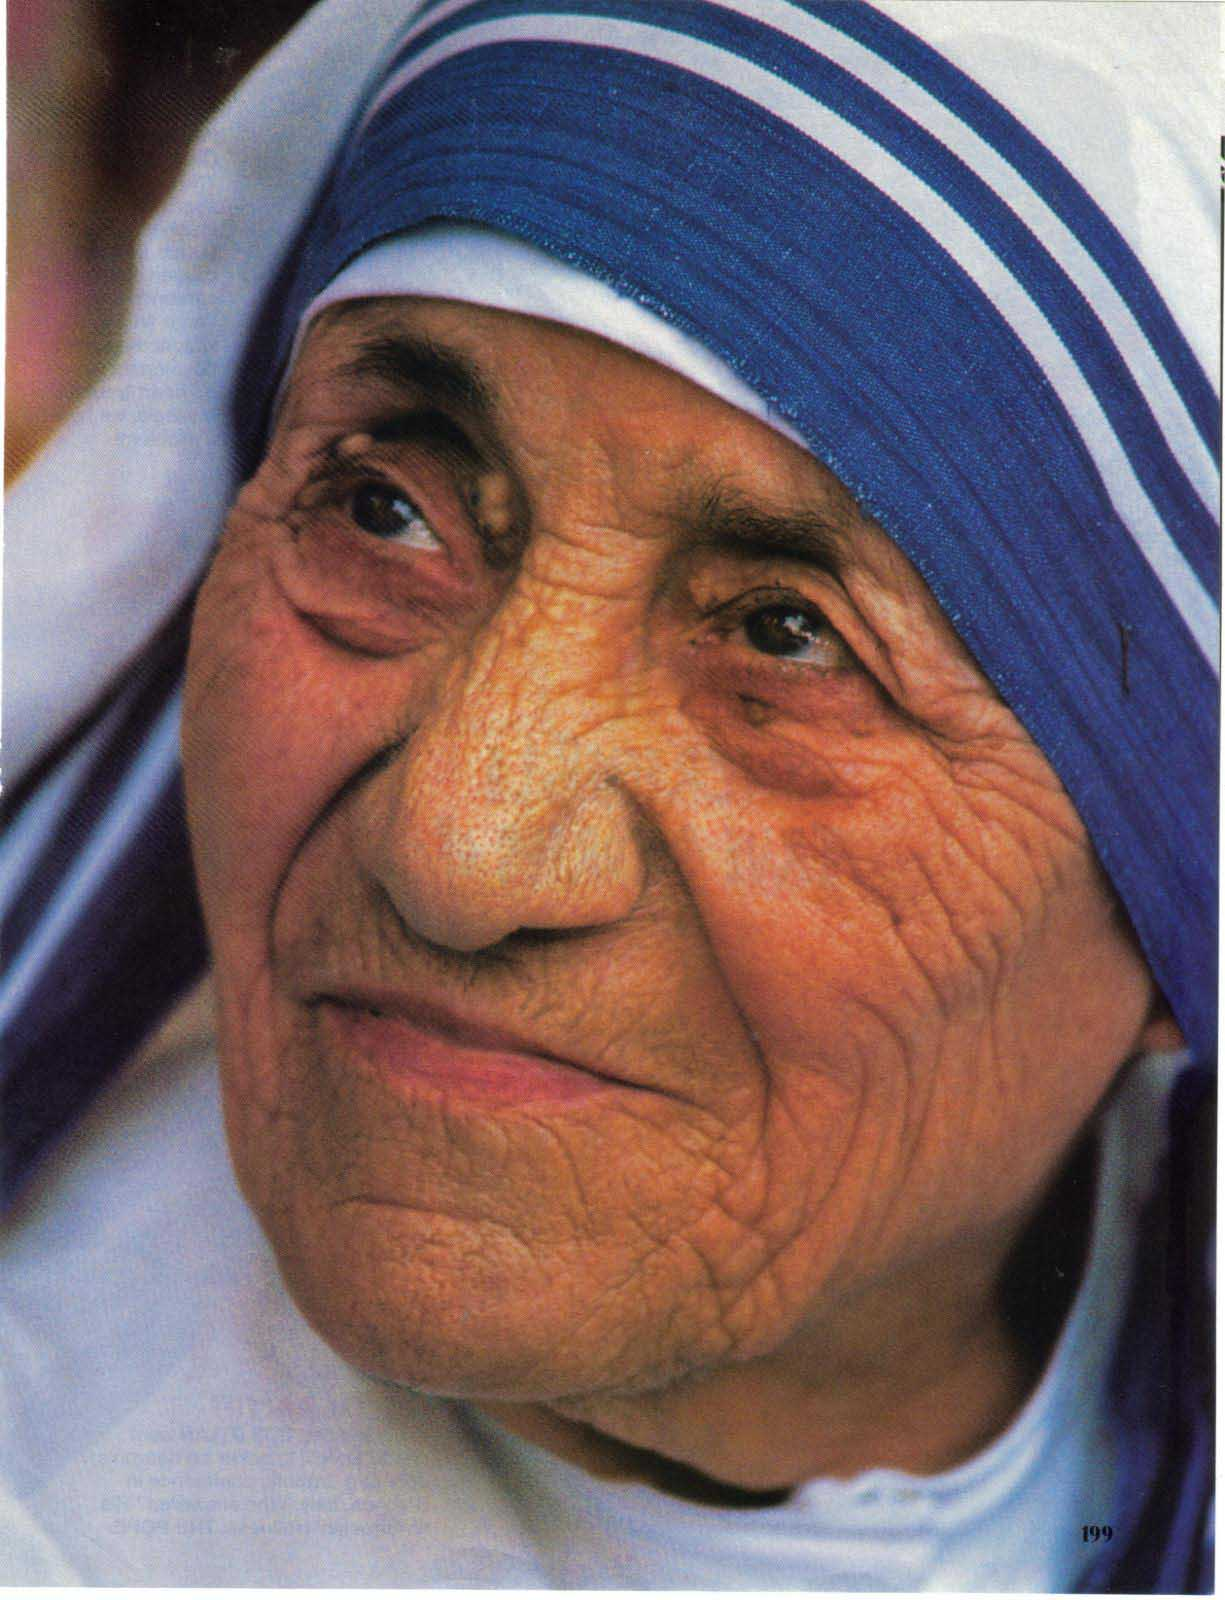 CLIP ARTS AND IMAGES OF INDIA: MOTHER TERESA.